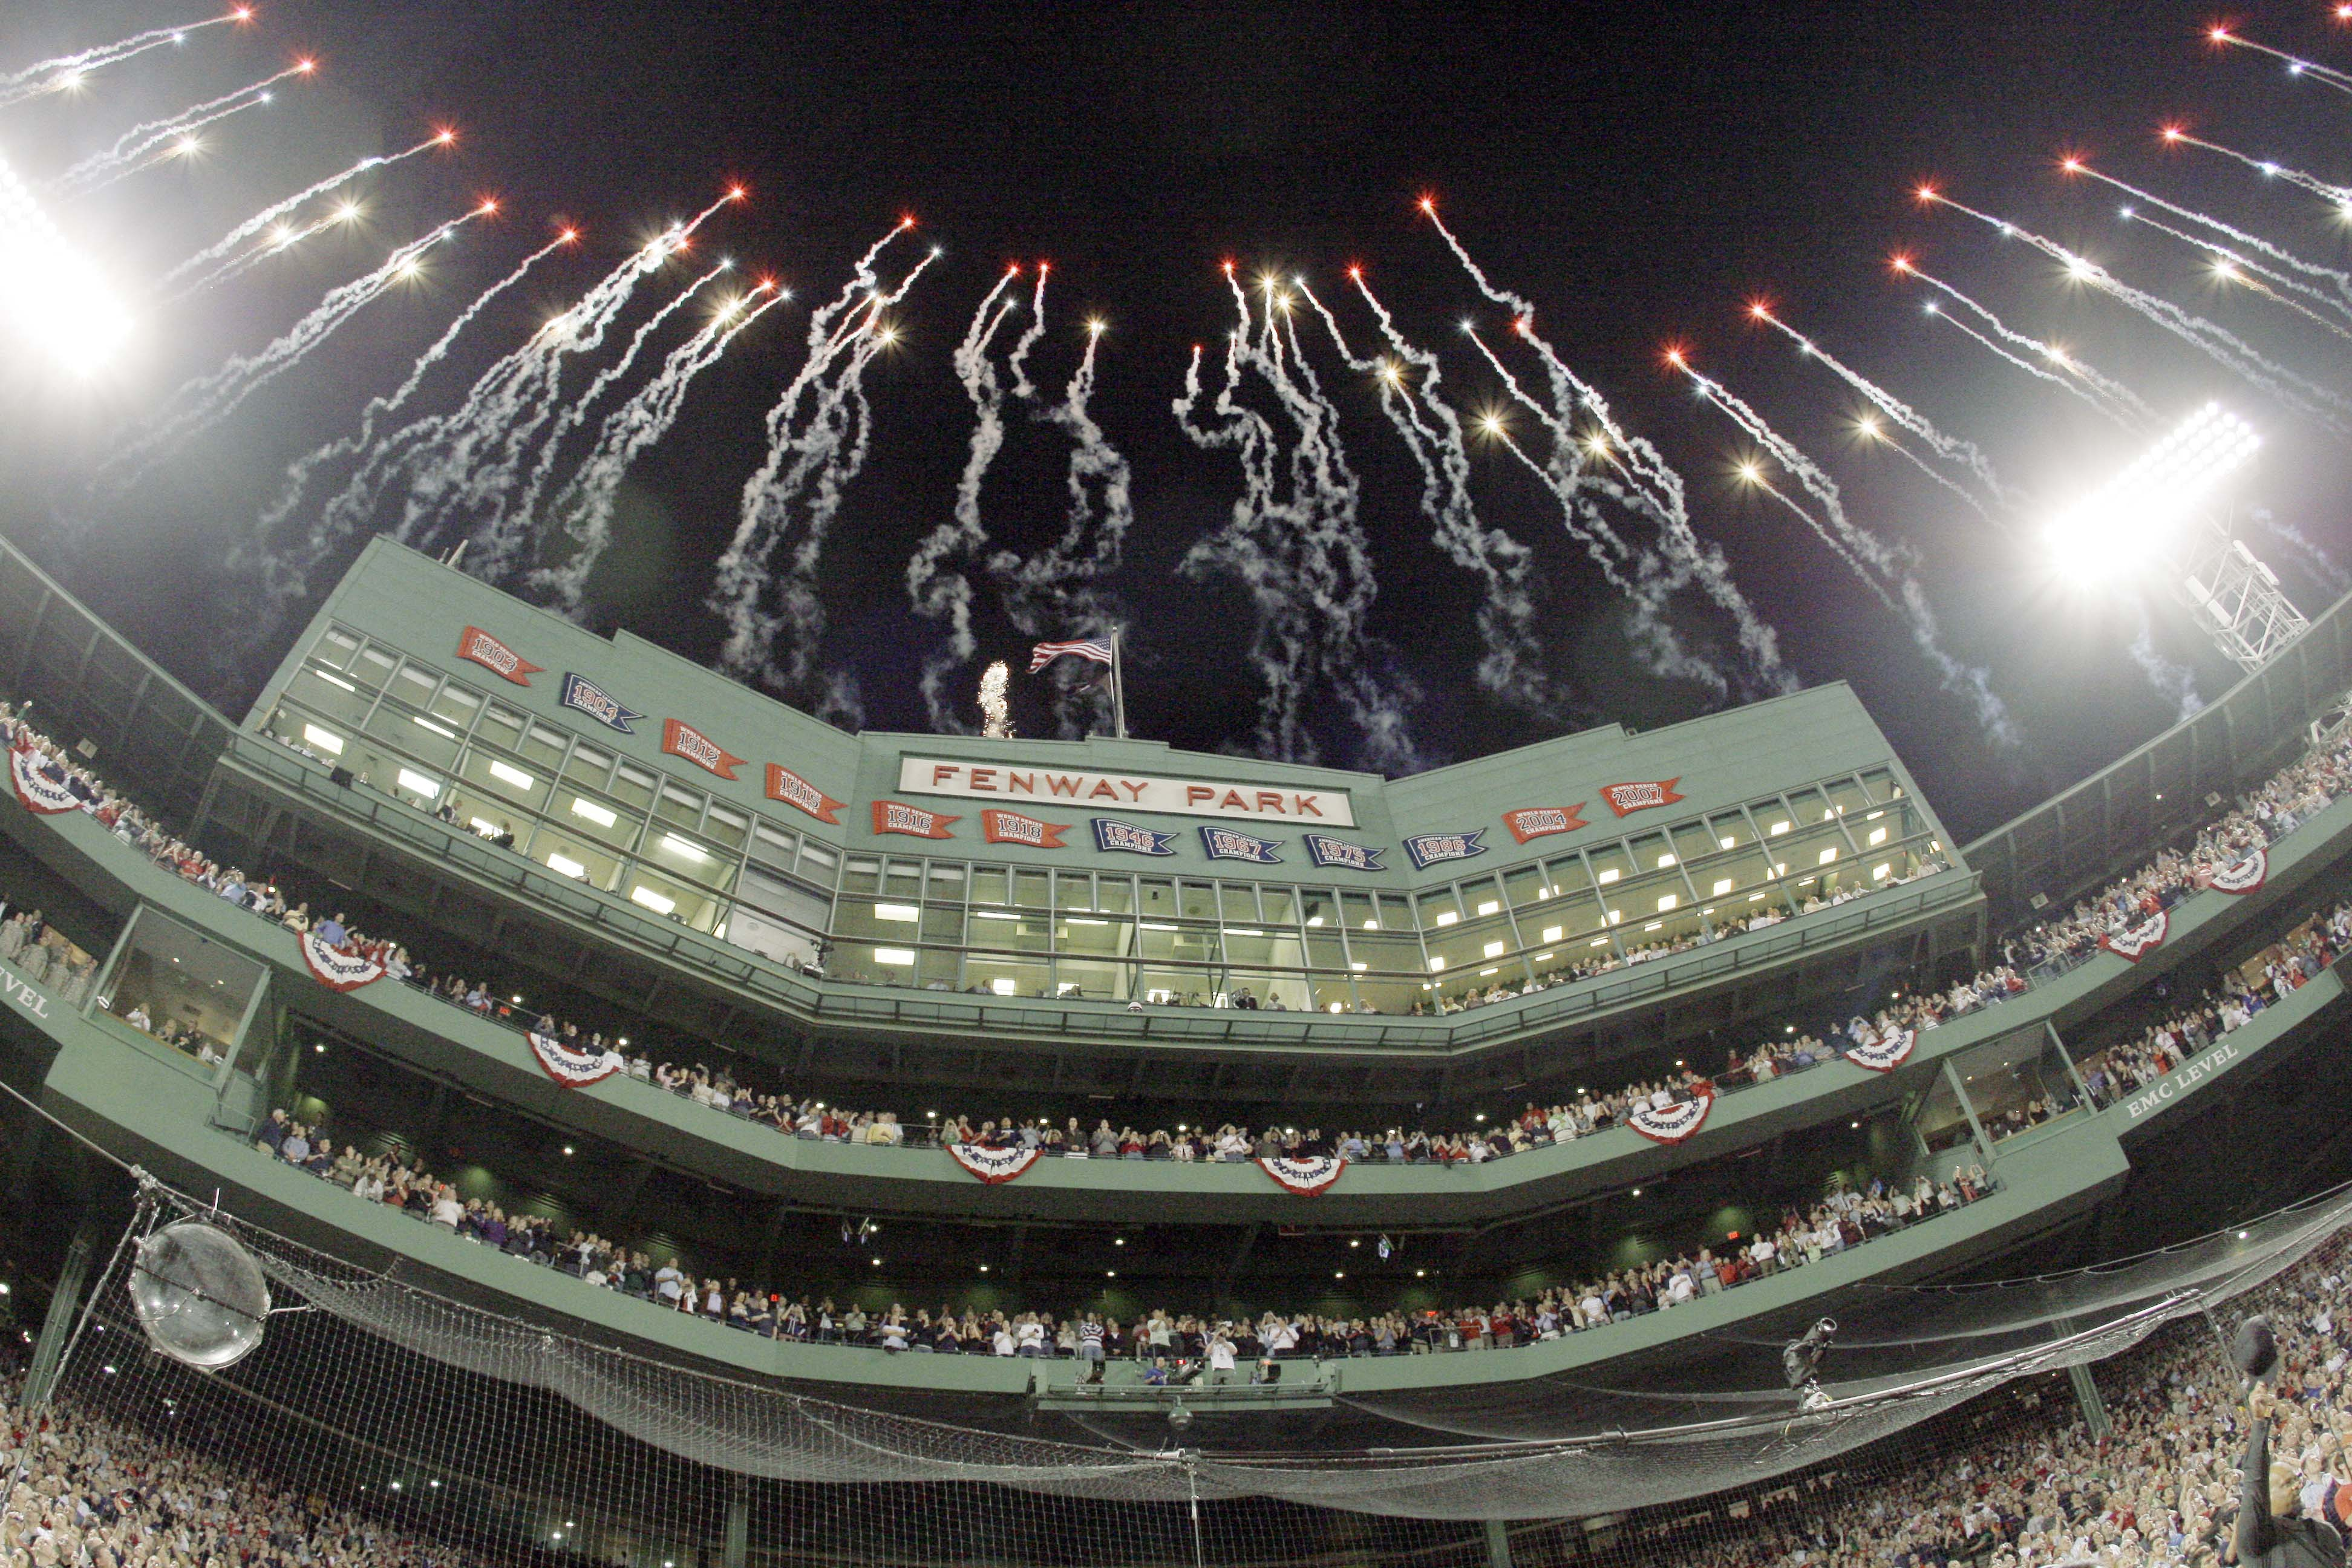 Fireworks soar over the Fenway Park pressbox before the opening game of the baseball season between the Boston Red Sox and New York Yankees on Sunday ...